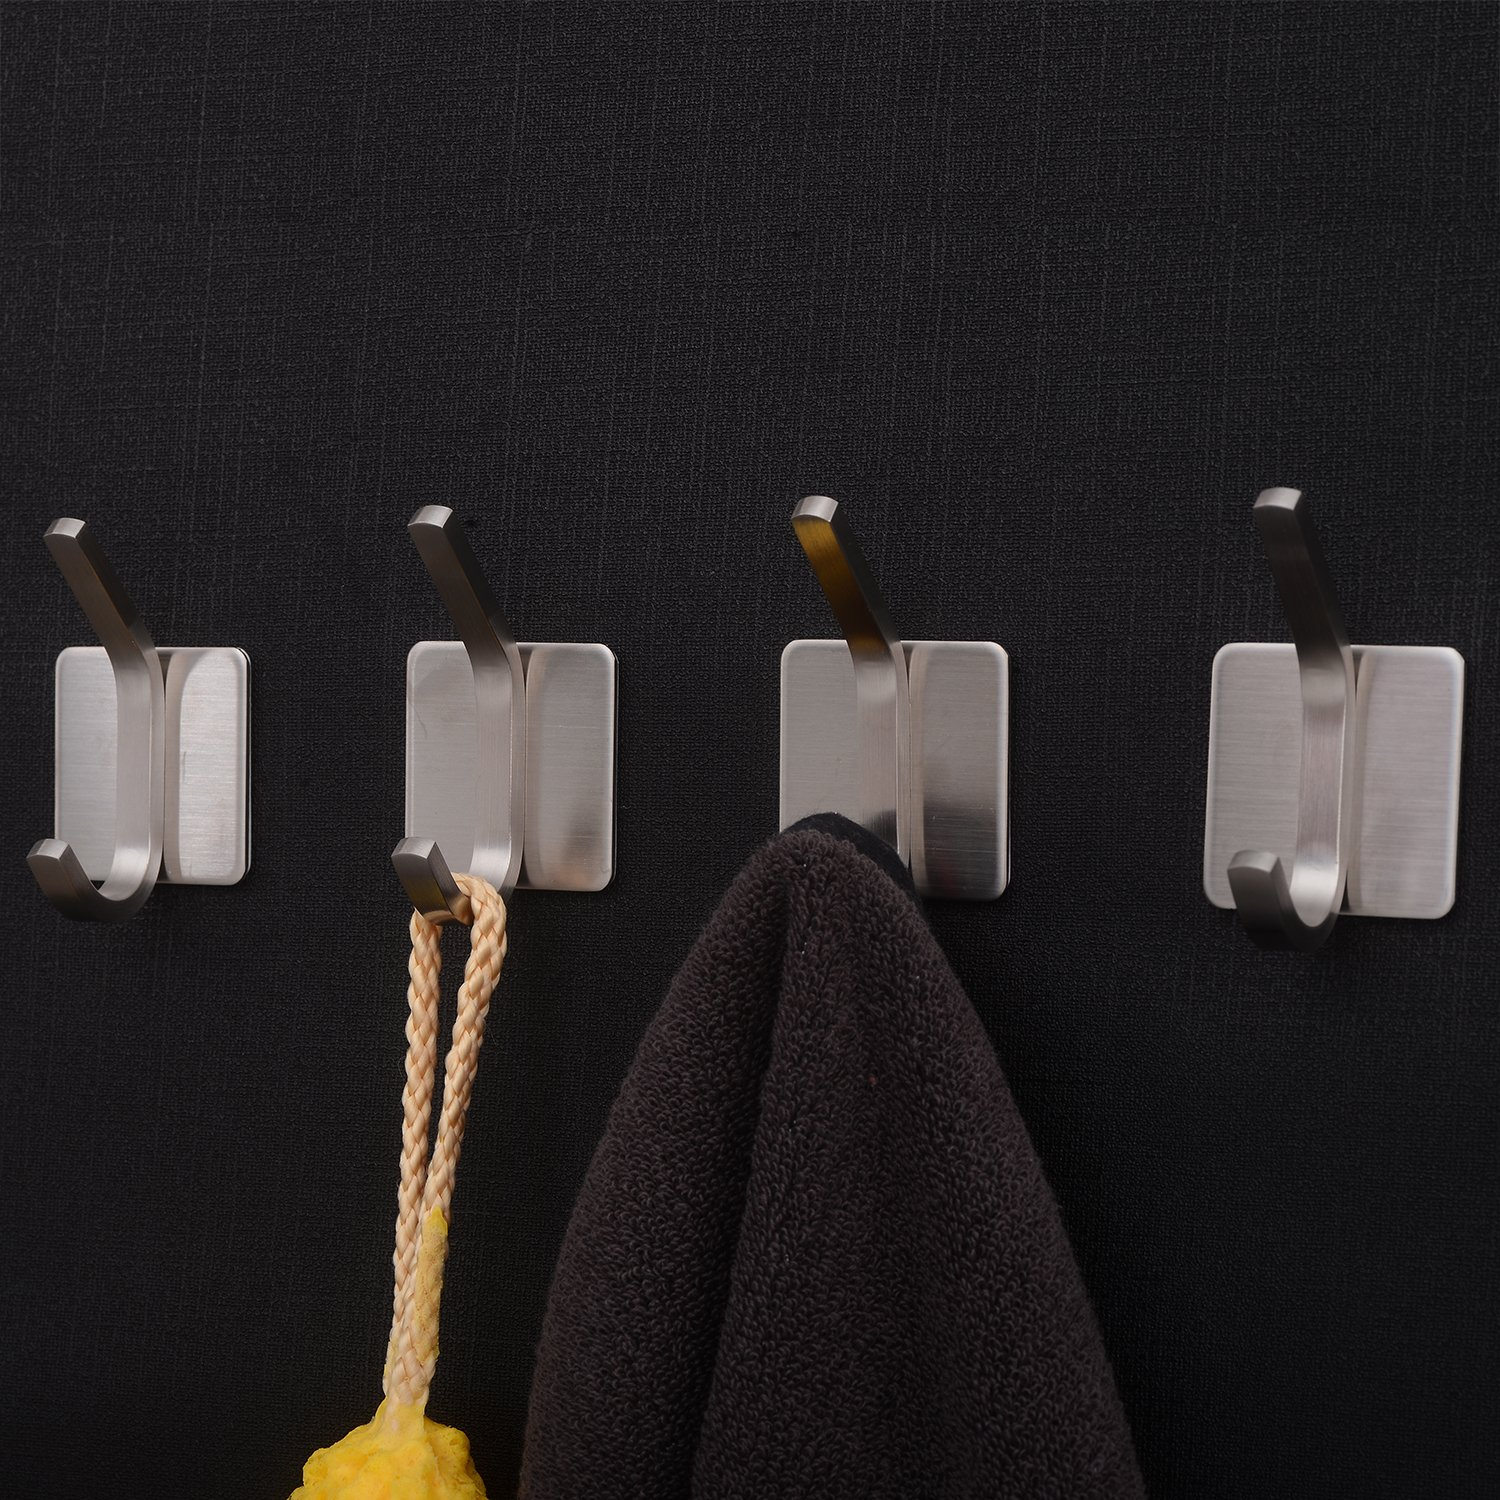 YIGII Towel Hook/3M Hooks - Adhesive Hooks Bathroom Wall Hooks Bath Show Robe Hook Self Adhesive Coat Hook Stick on Wall Stainless Steel Brushed 4-Pack